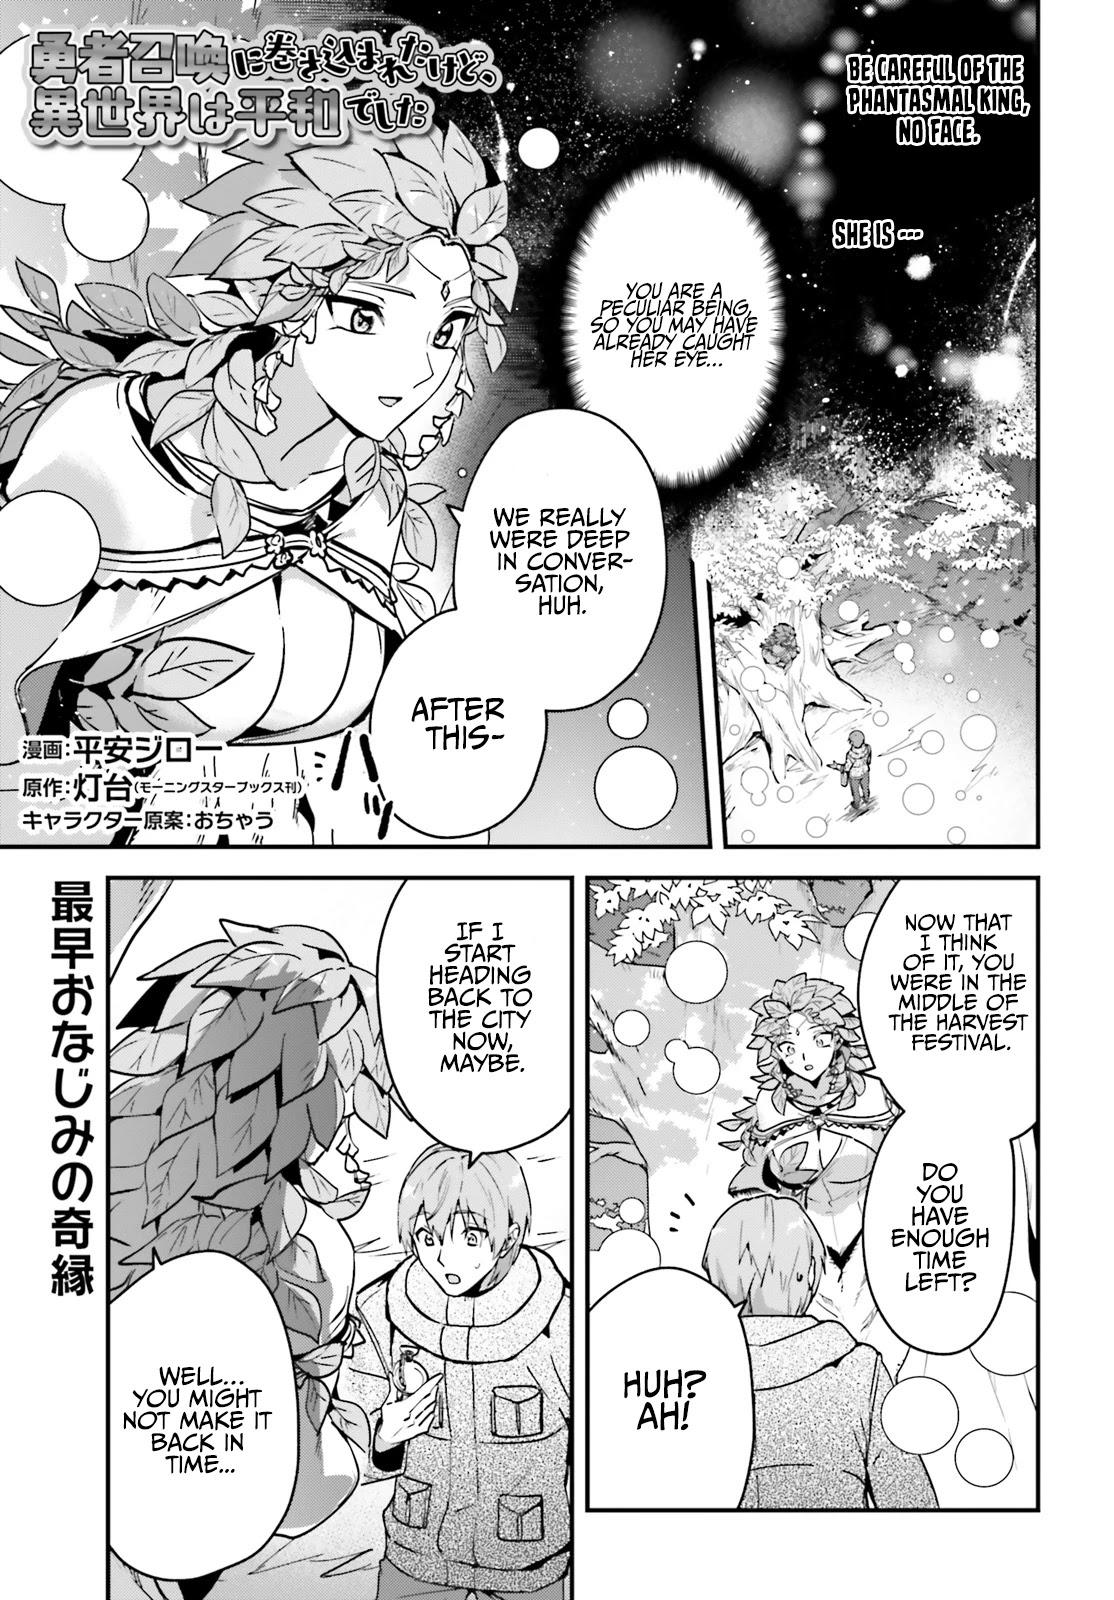 I Was Caught Up In A Hero Summoning, But That World Is At Peace Chapter 26 page 3 - Mangakakalots.com